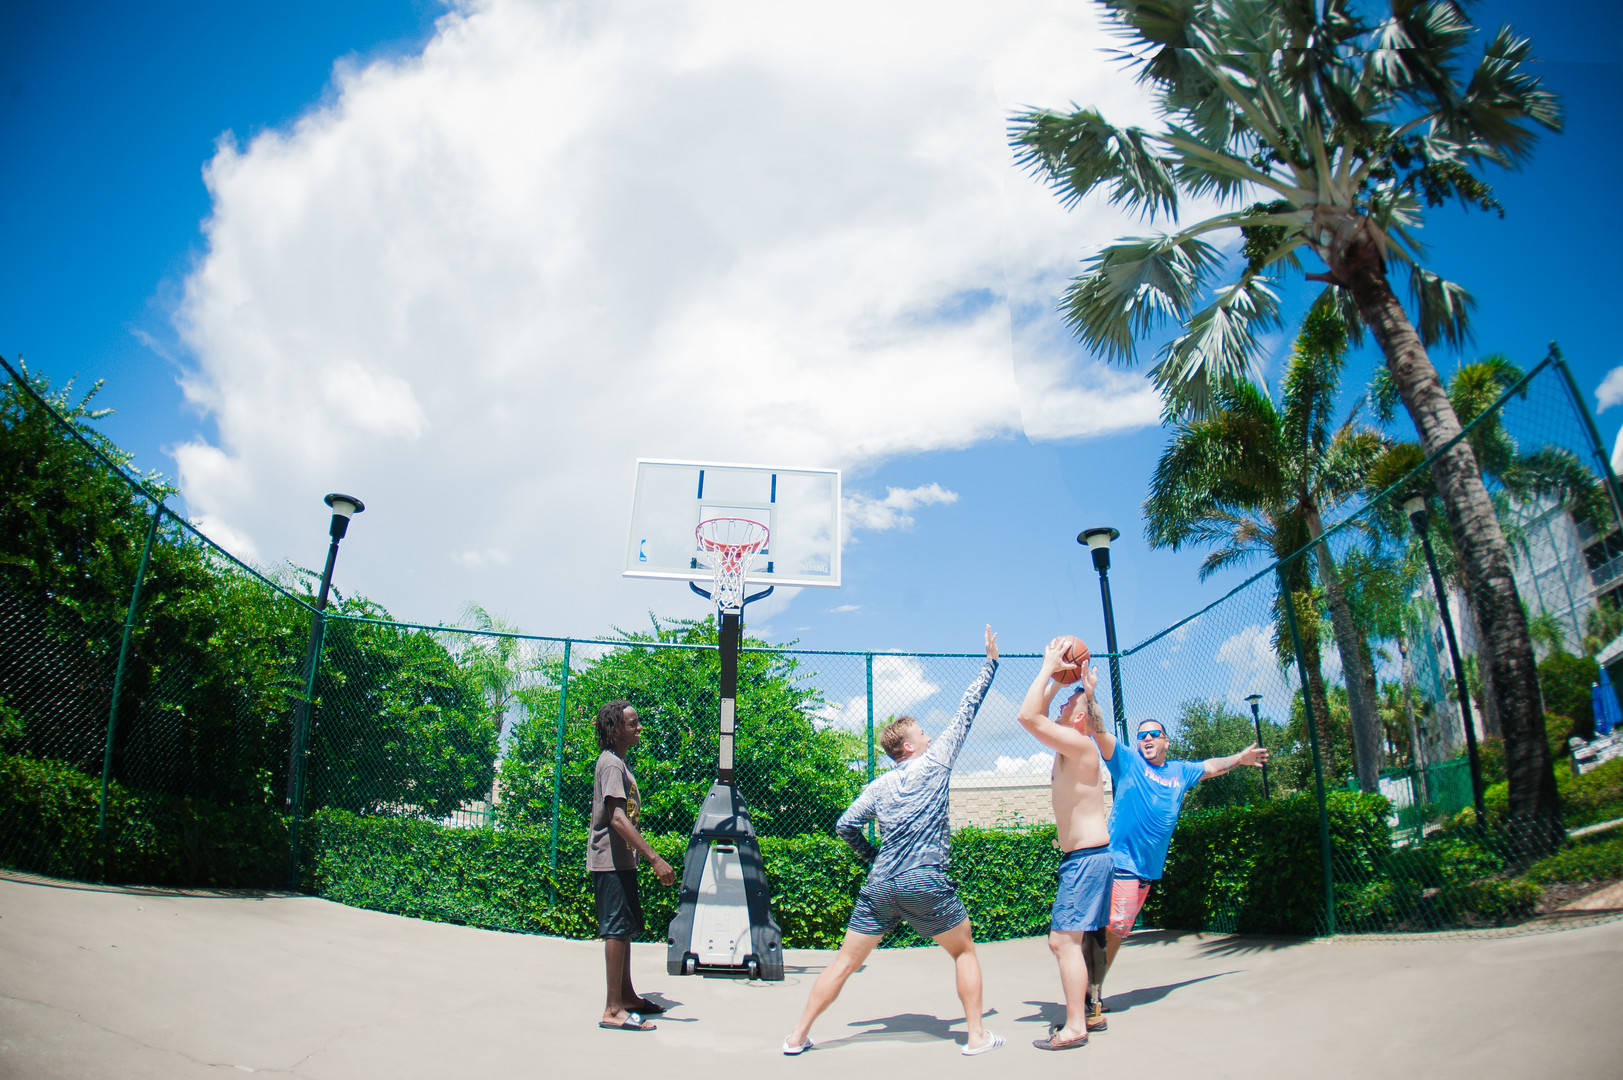 We Have A Full Court Basketball Court